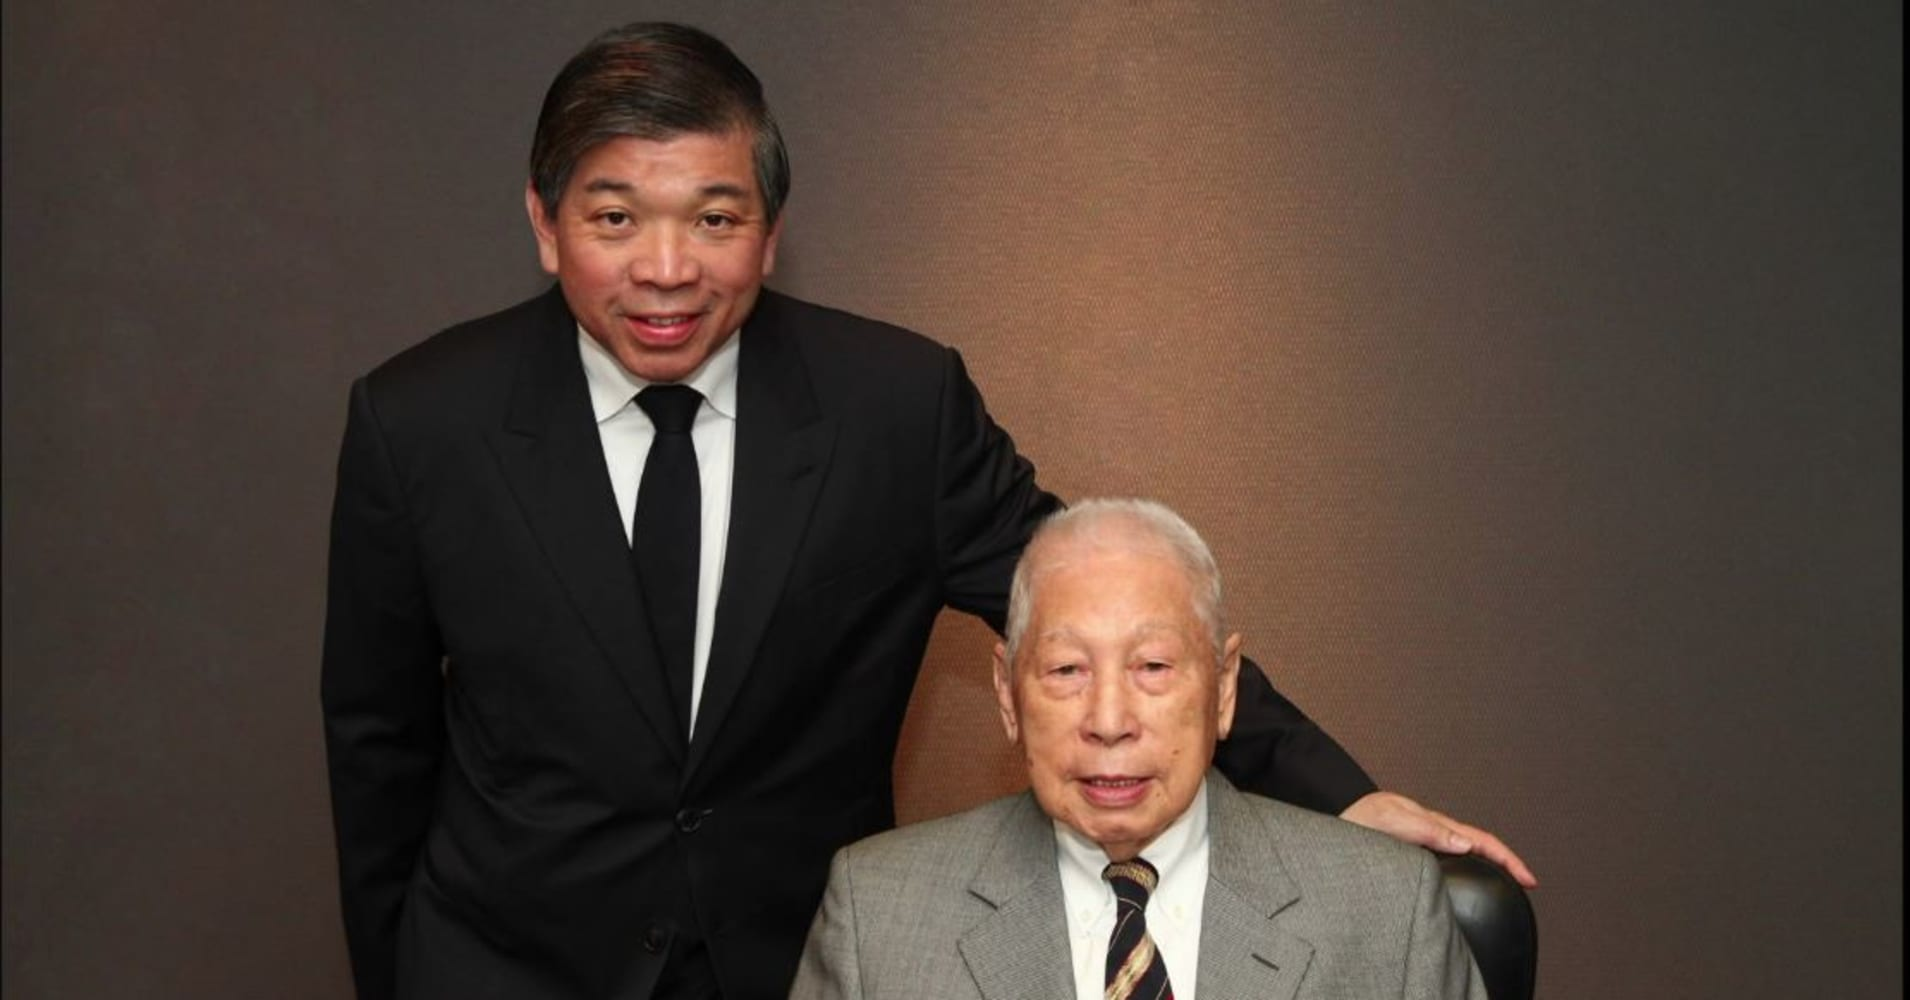 World's oldest billionaire Yun Chung Chang goes to work every day